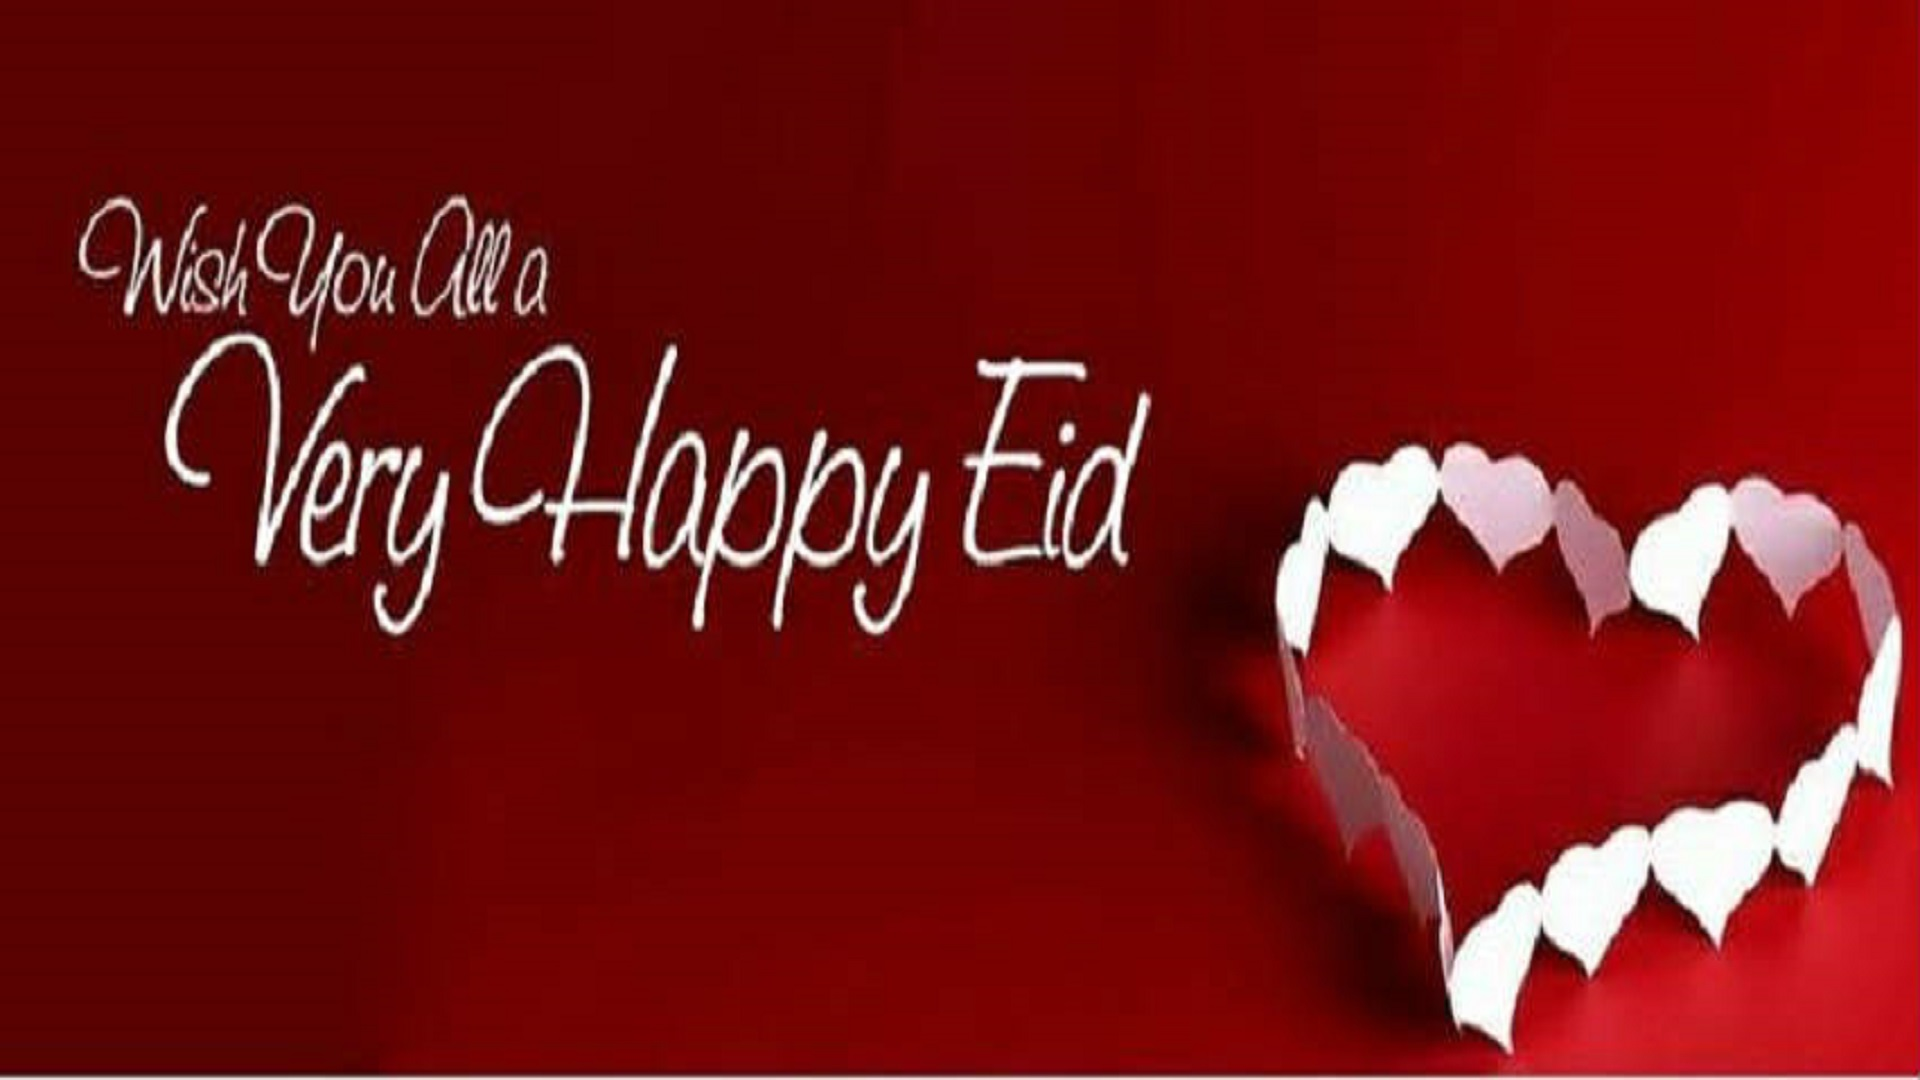 Happy-Eid-Mubarak-fb-free-hd-wallpapers